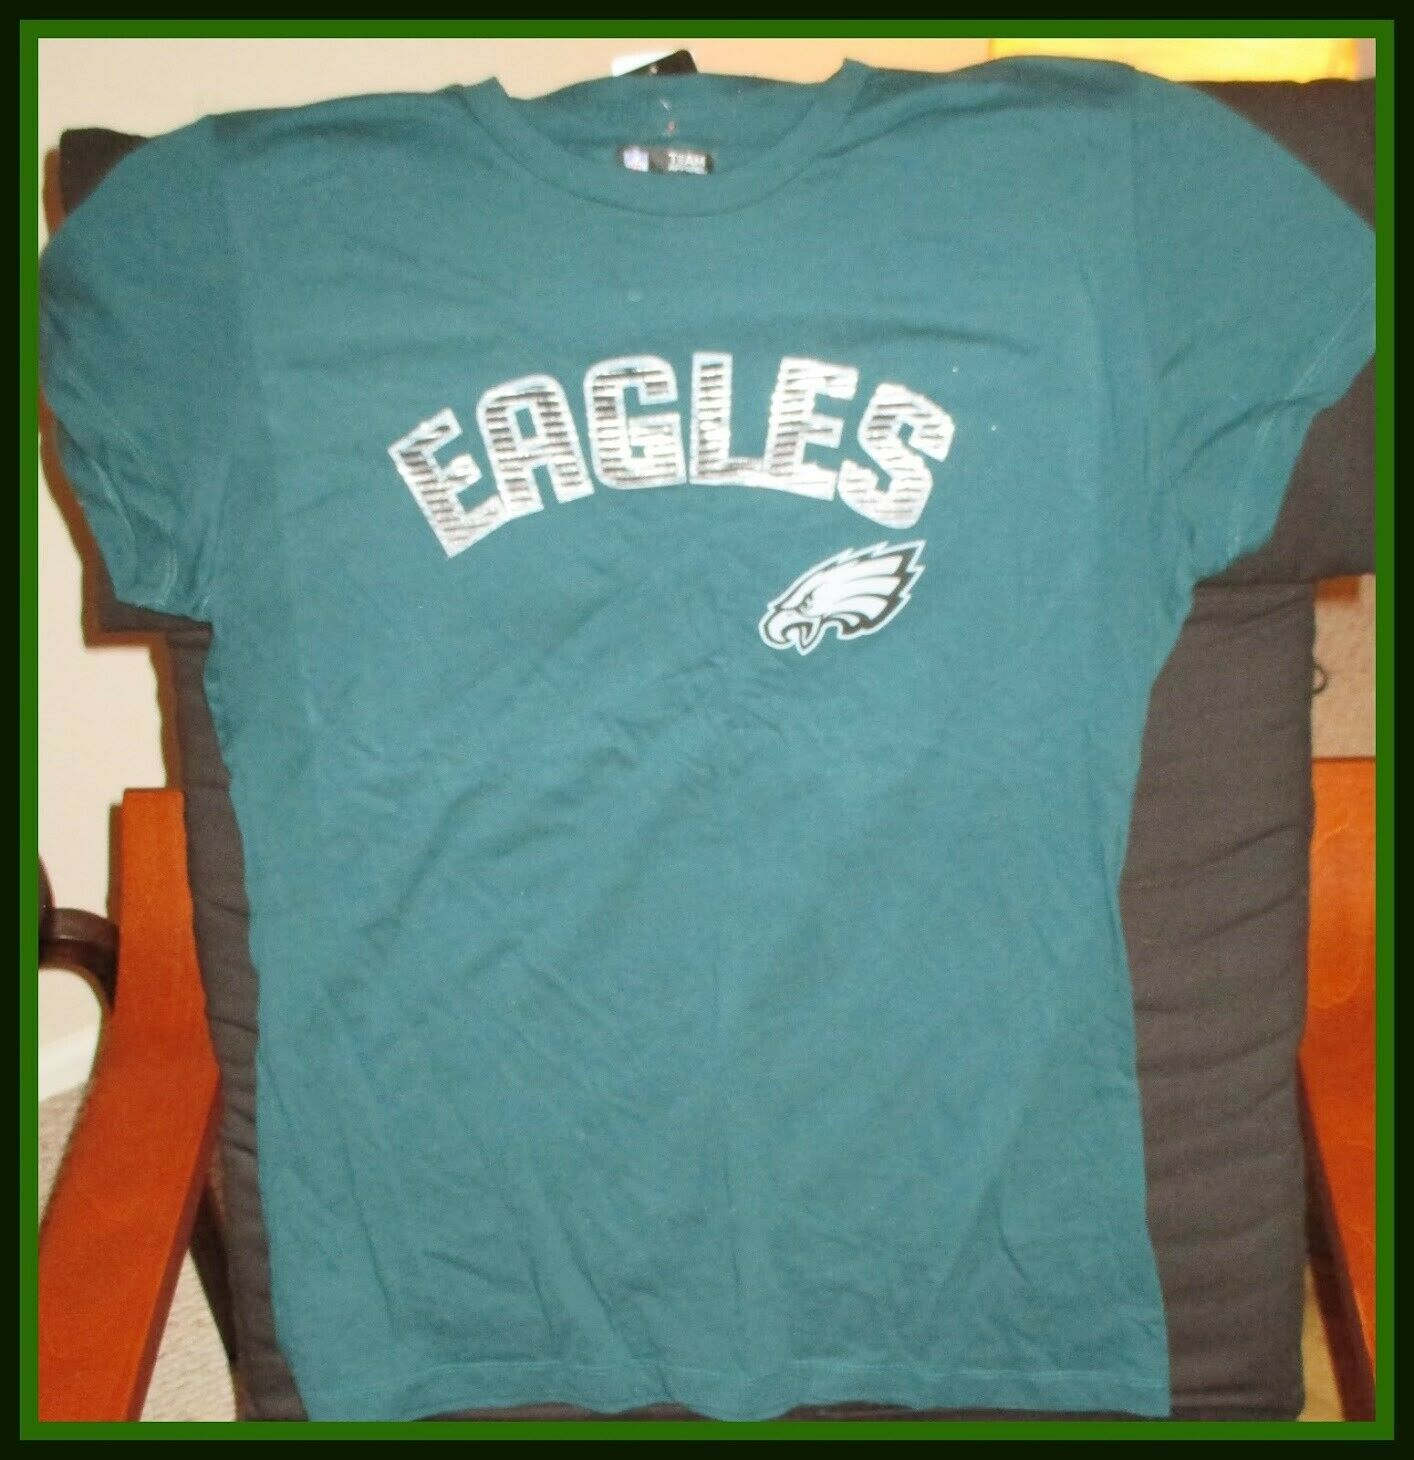 Primary image for Philadelphia Eagles NFL Apparel  Women's Green Shirt-X-Large